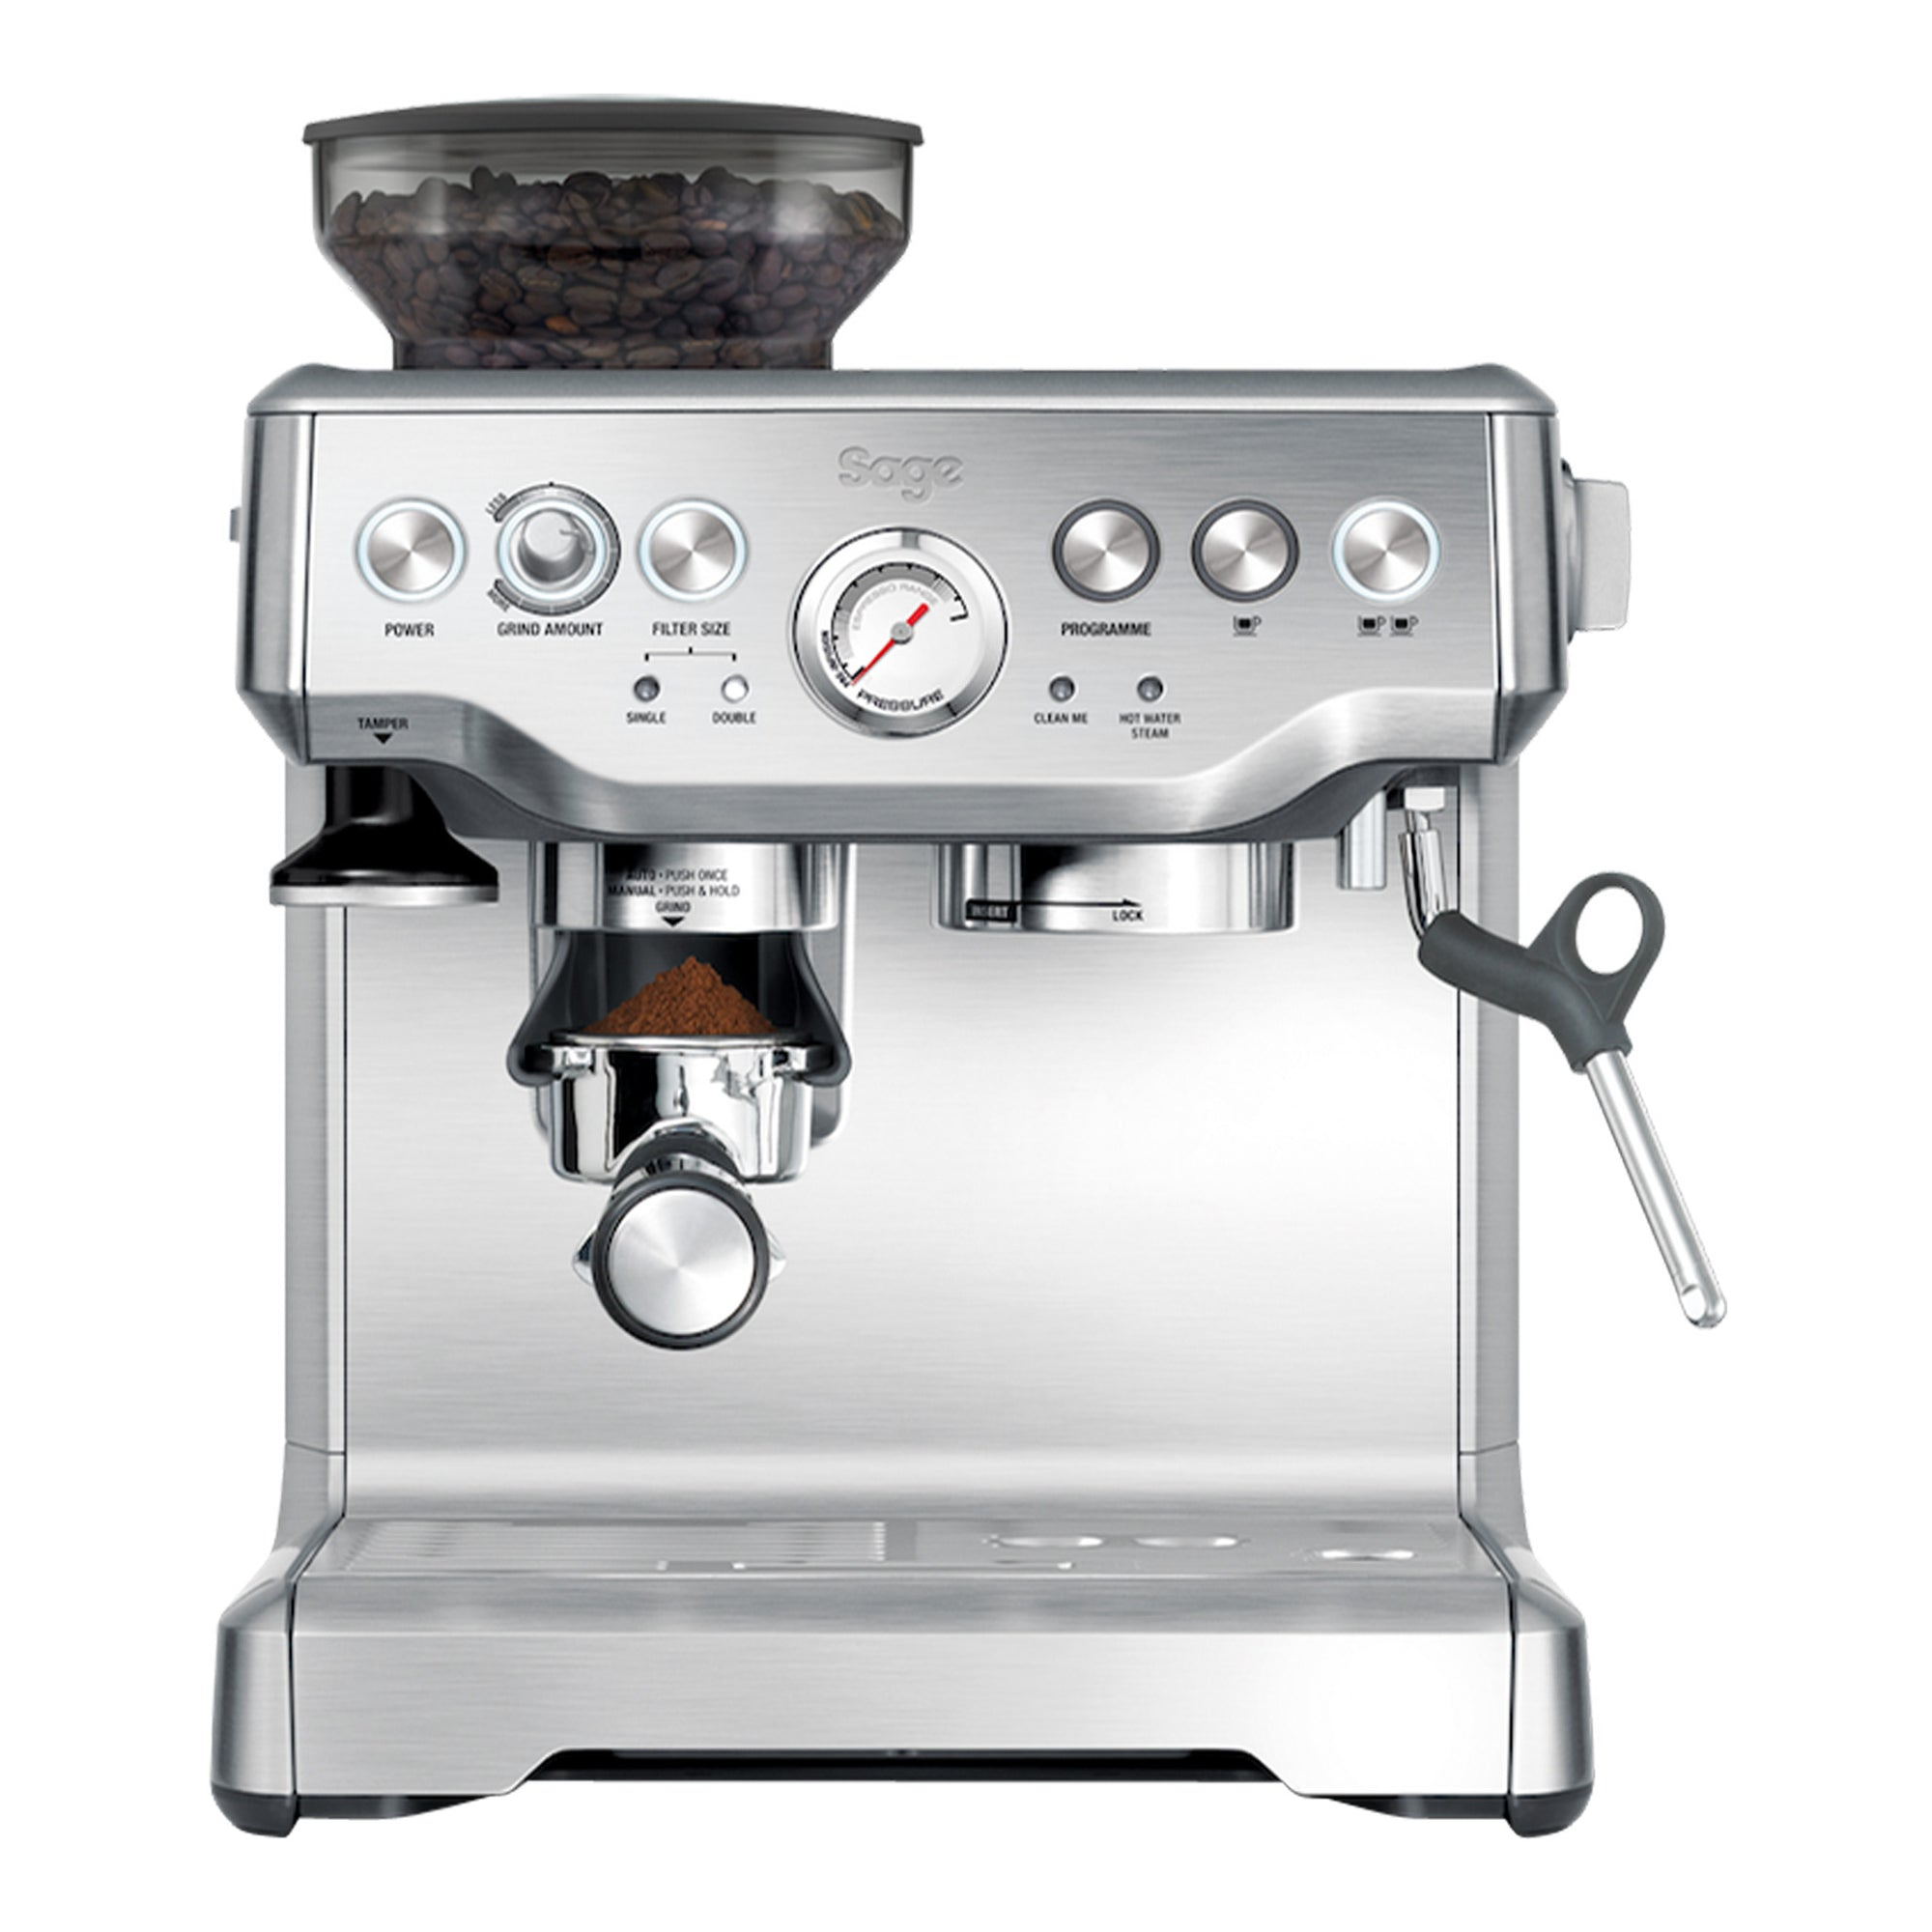 Espresso Machine, The Barista Express - Sage - Espresso Gear